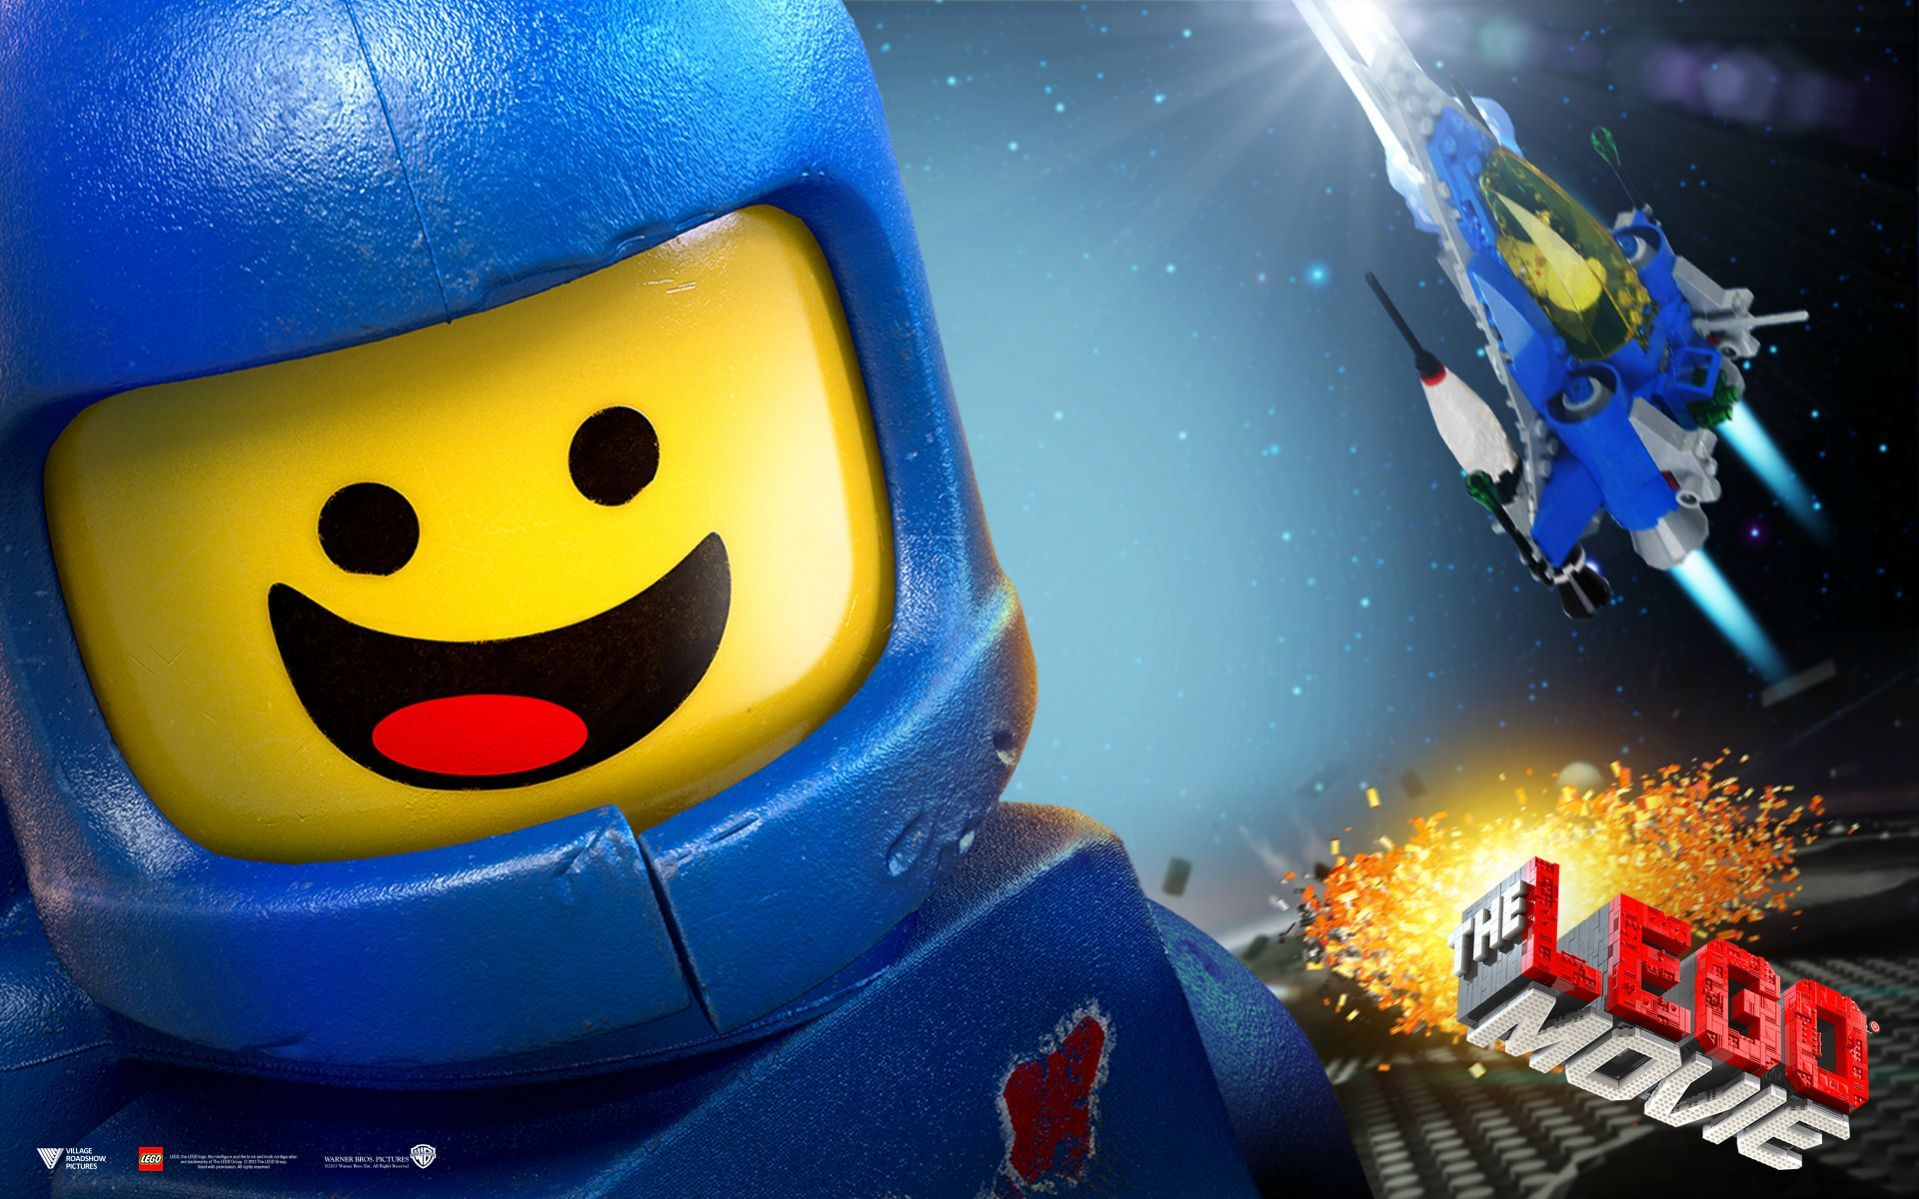 Benny - The Lego movie 1920x1200 | Wallpapers | Pinterest